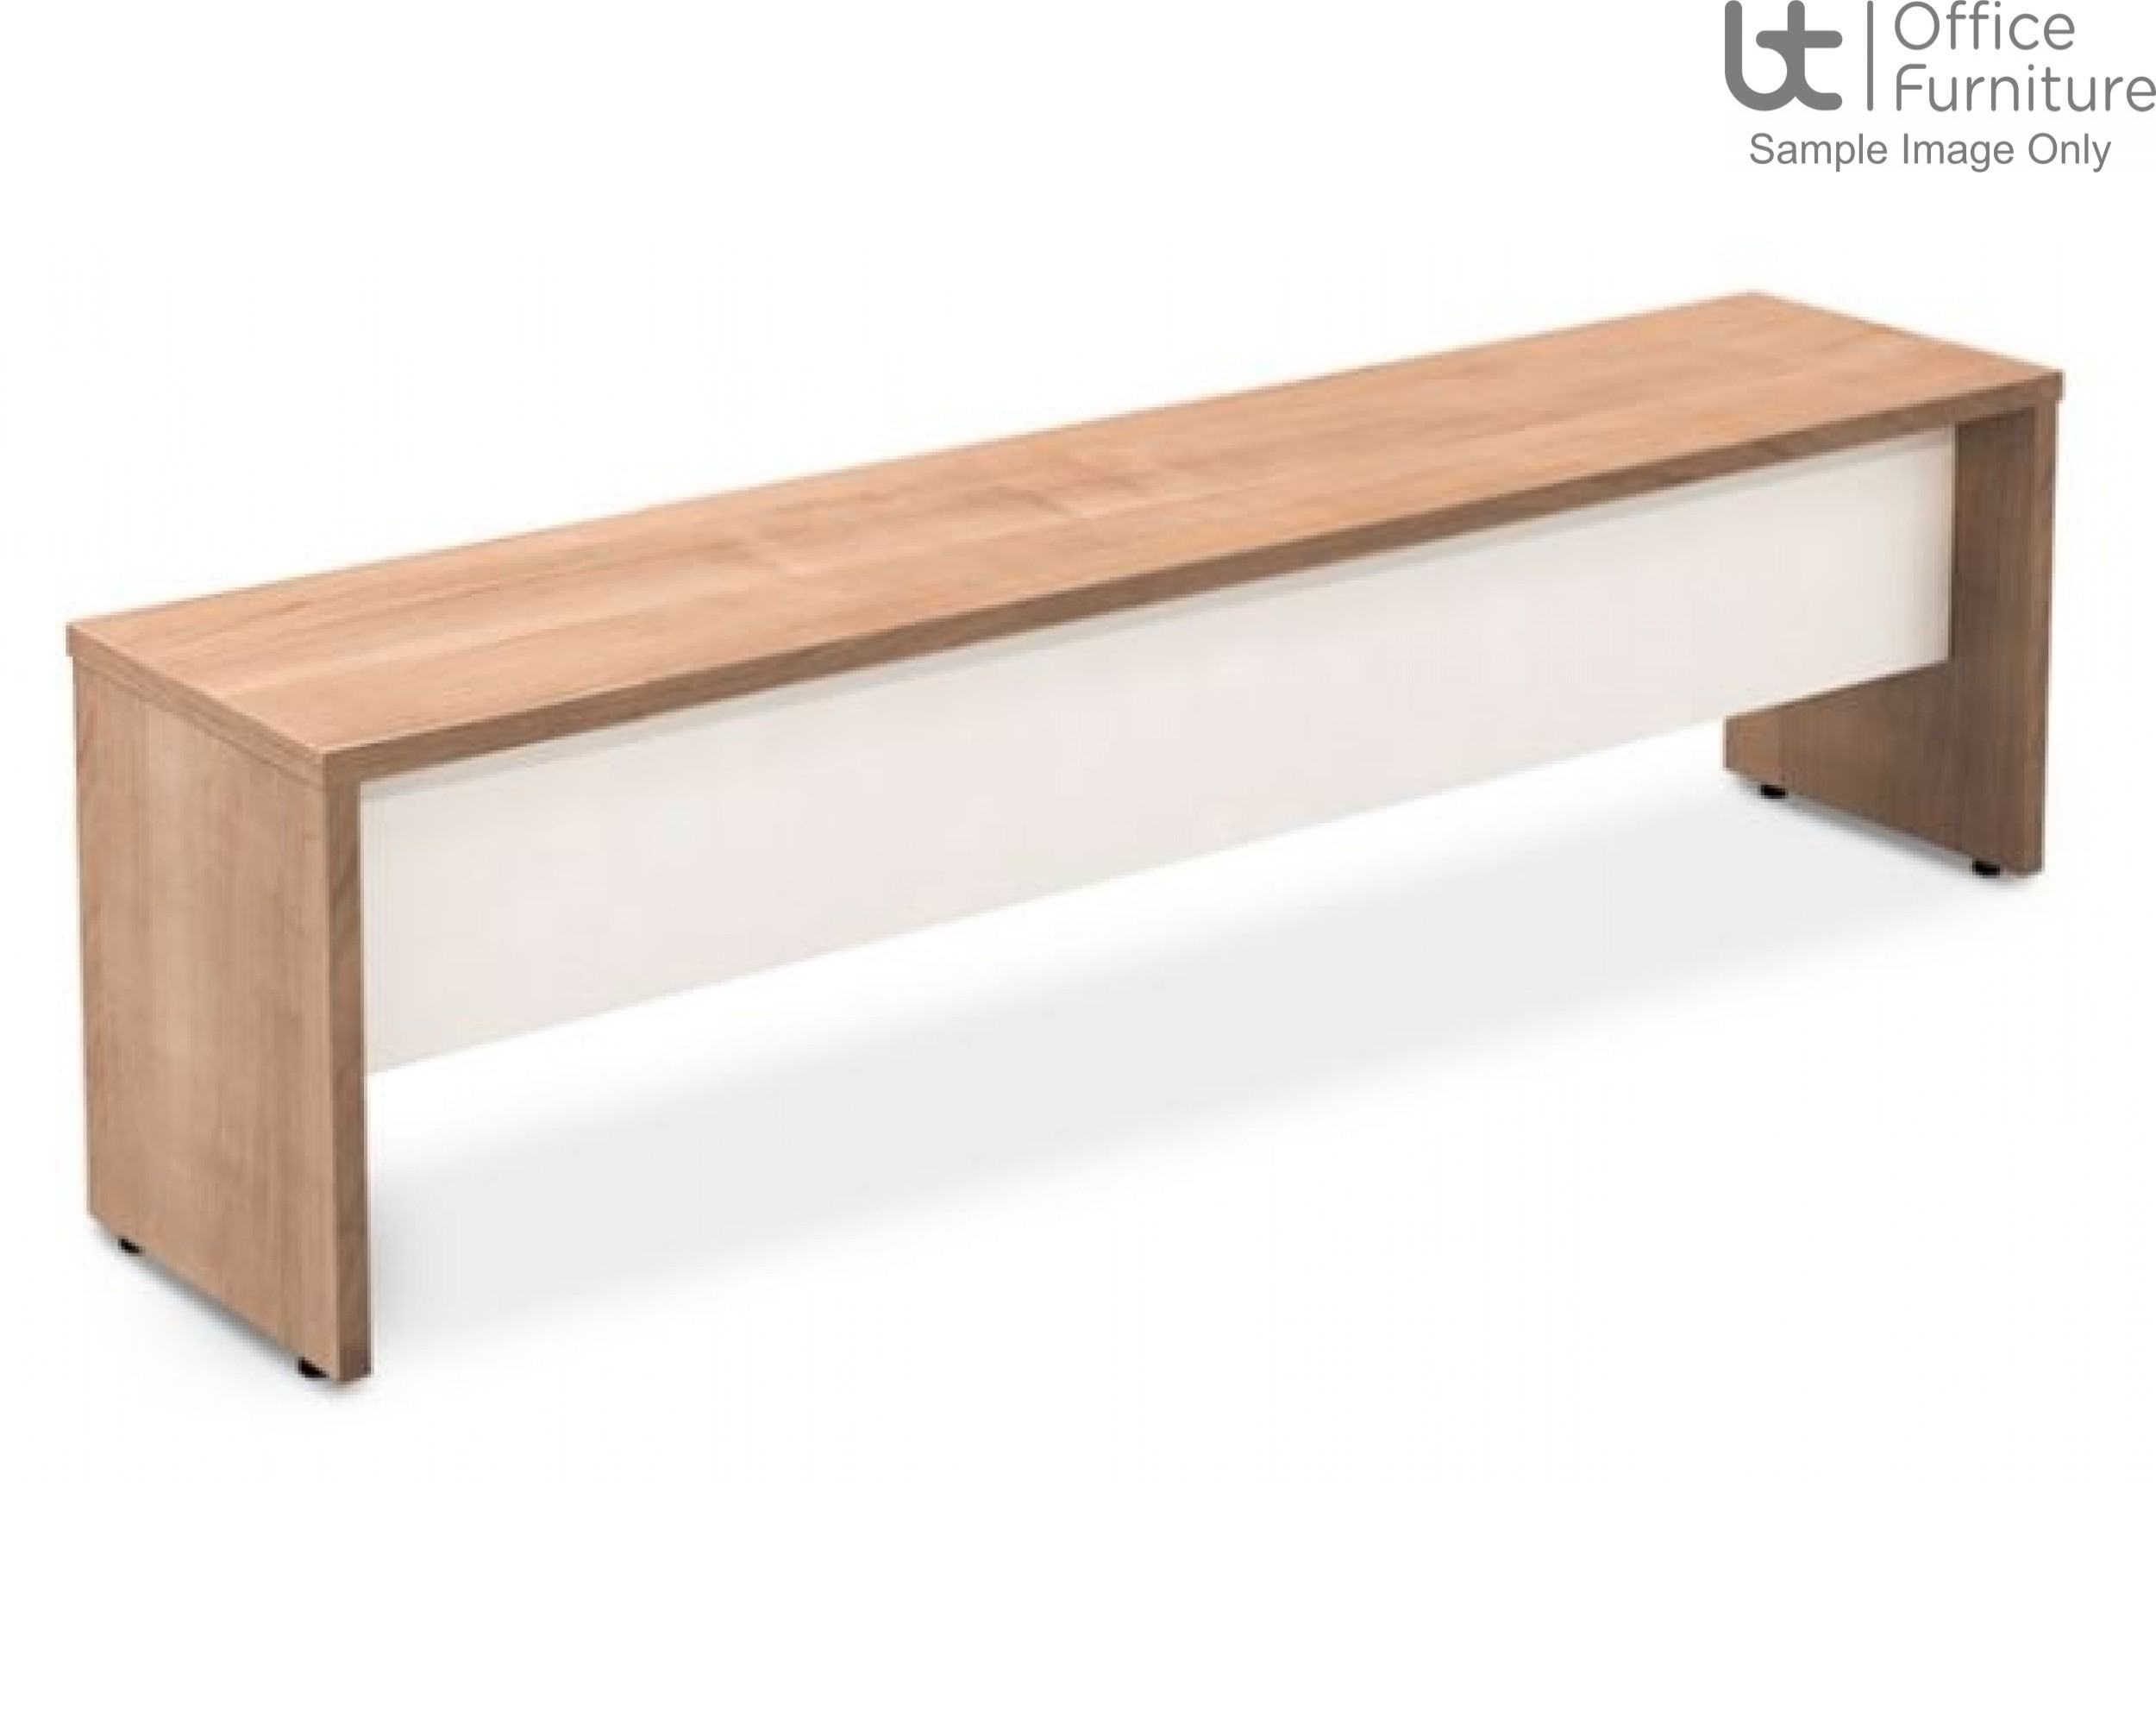 Robust Block Panel Frame Bench Seat W1200 x D350 x H410mm